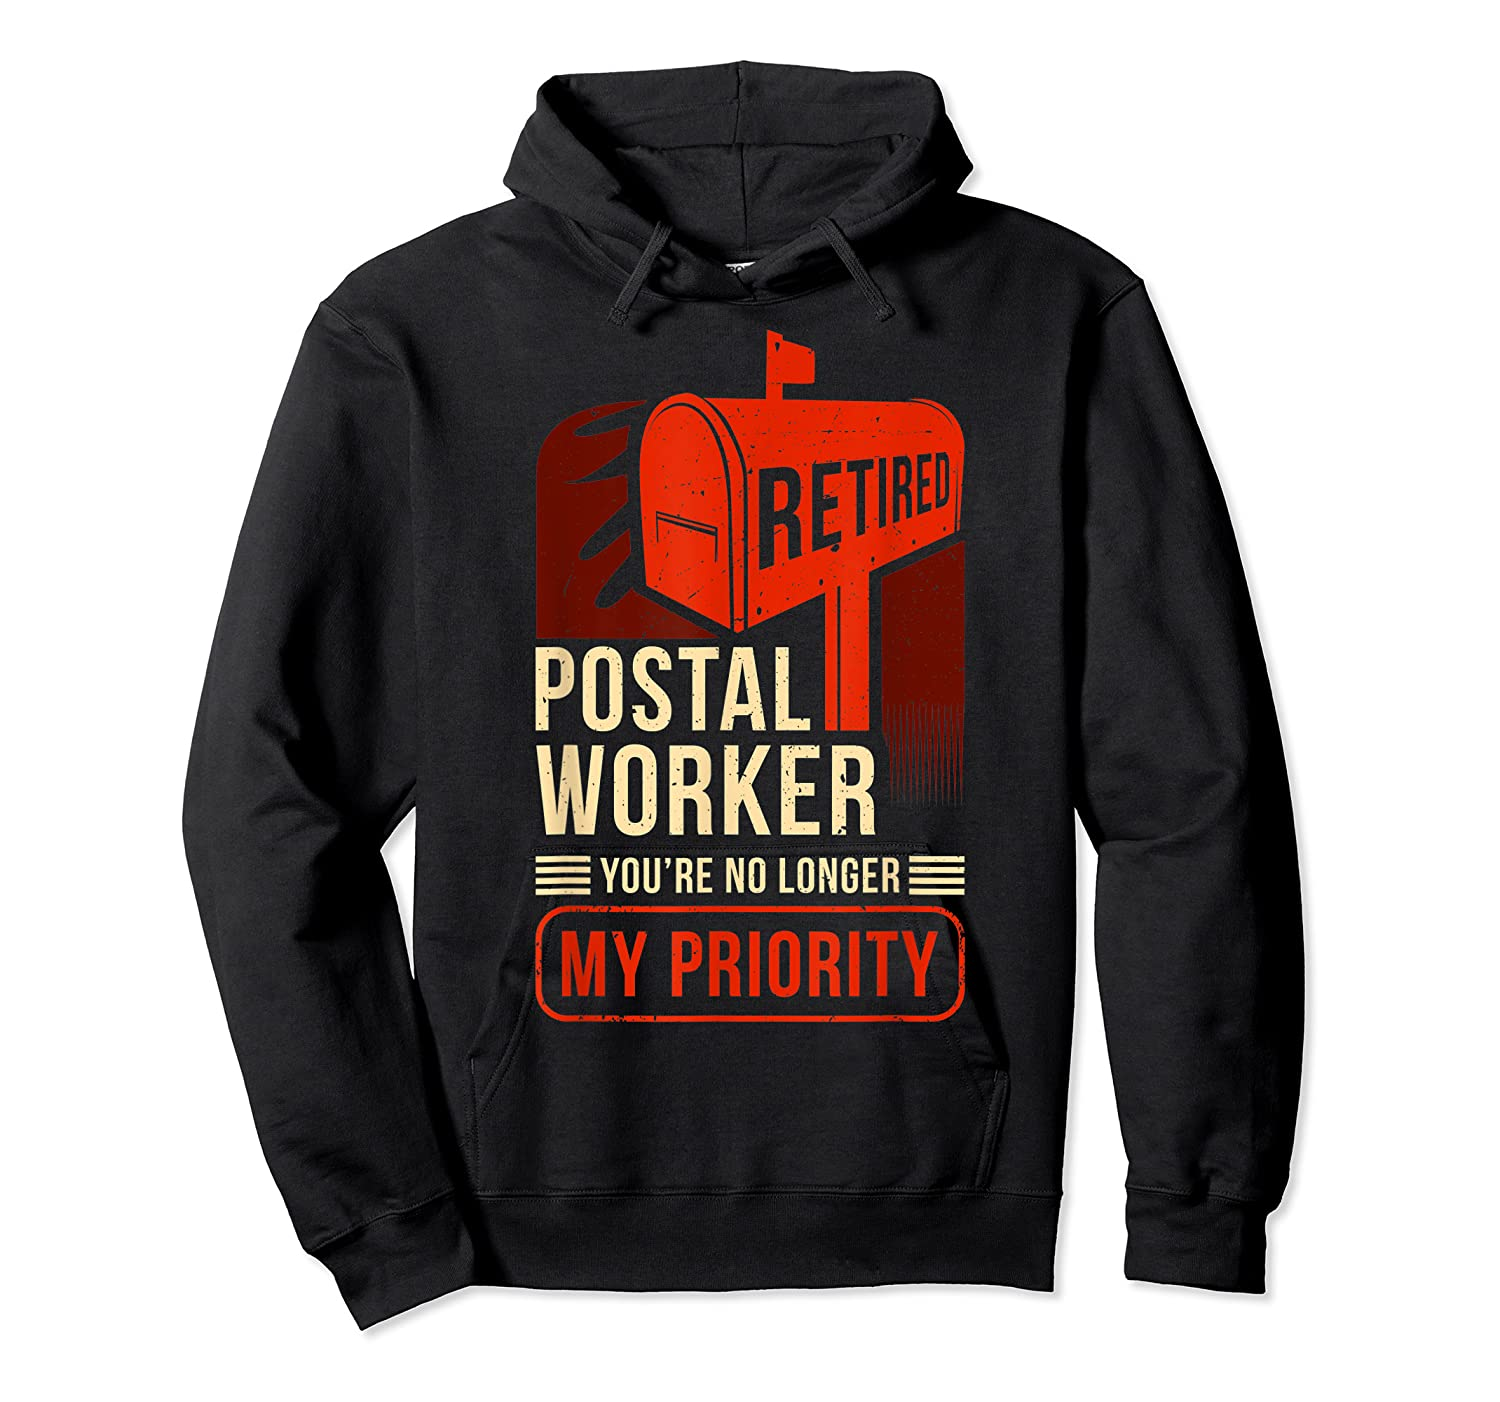 Retired Postal Worker - You're No Longer My Priority Shirt Unisex Pullover Hoodie